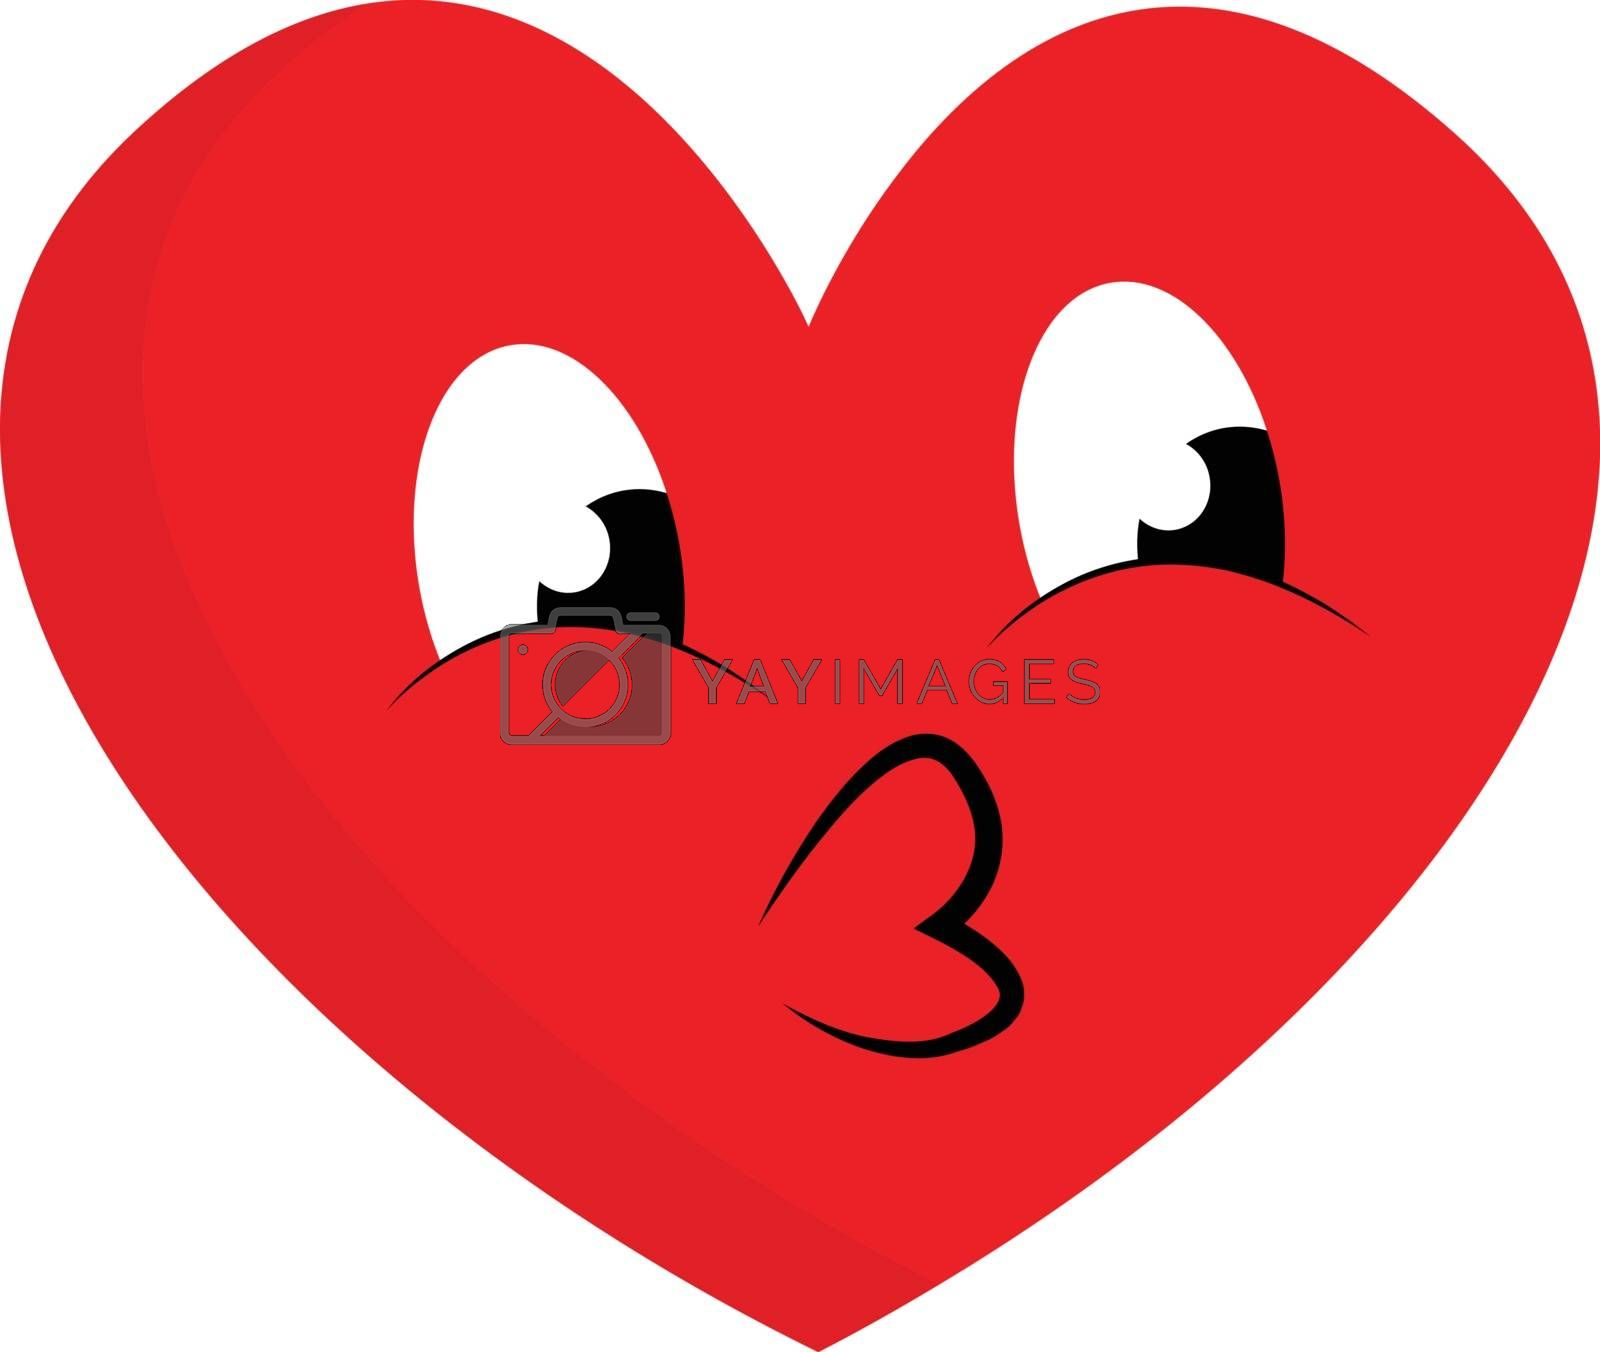 Royalty free image of Emoji of a cute red heart vector or color illustration by Morphart